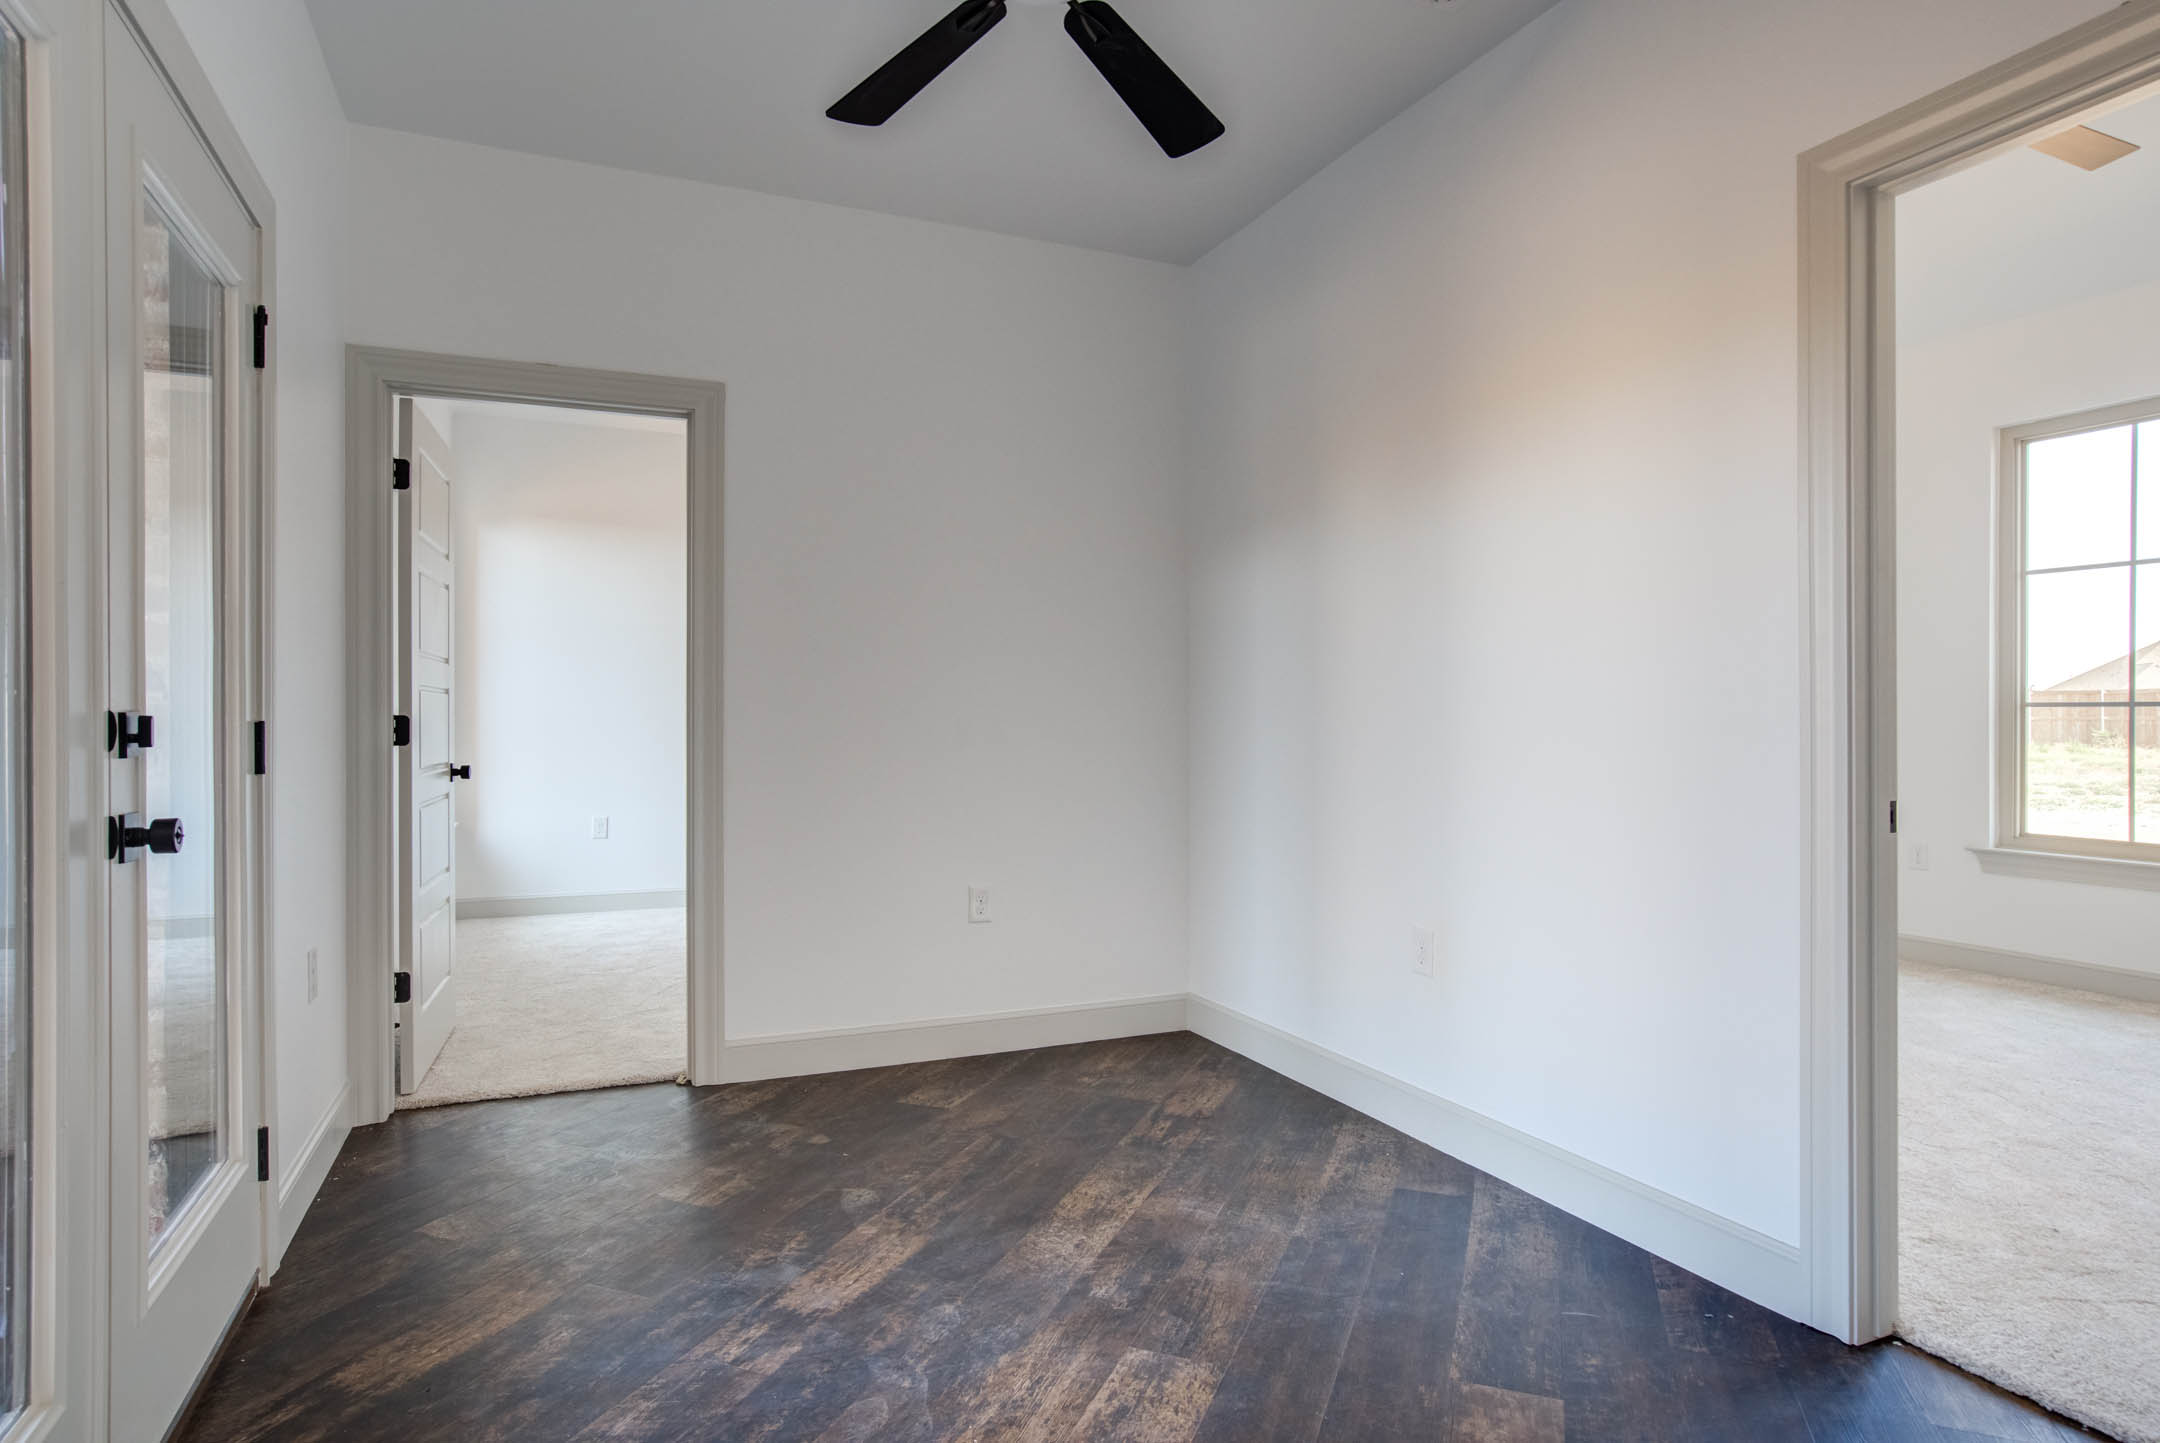 Spacious intersecting hallway for bedrooms to see out to patio in new home for sale.